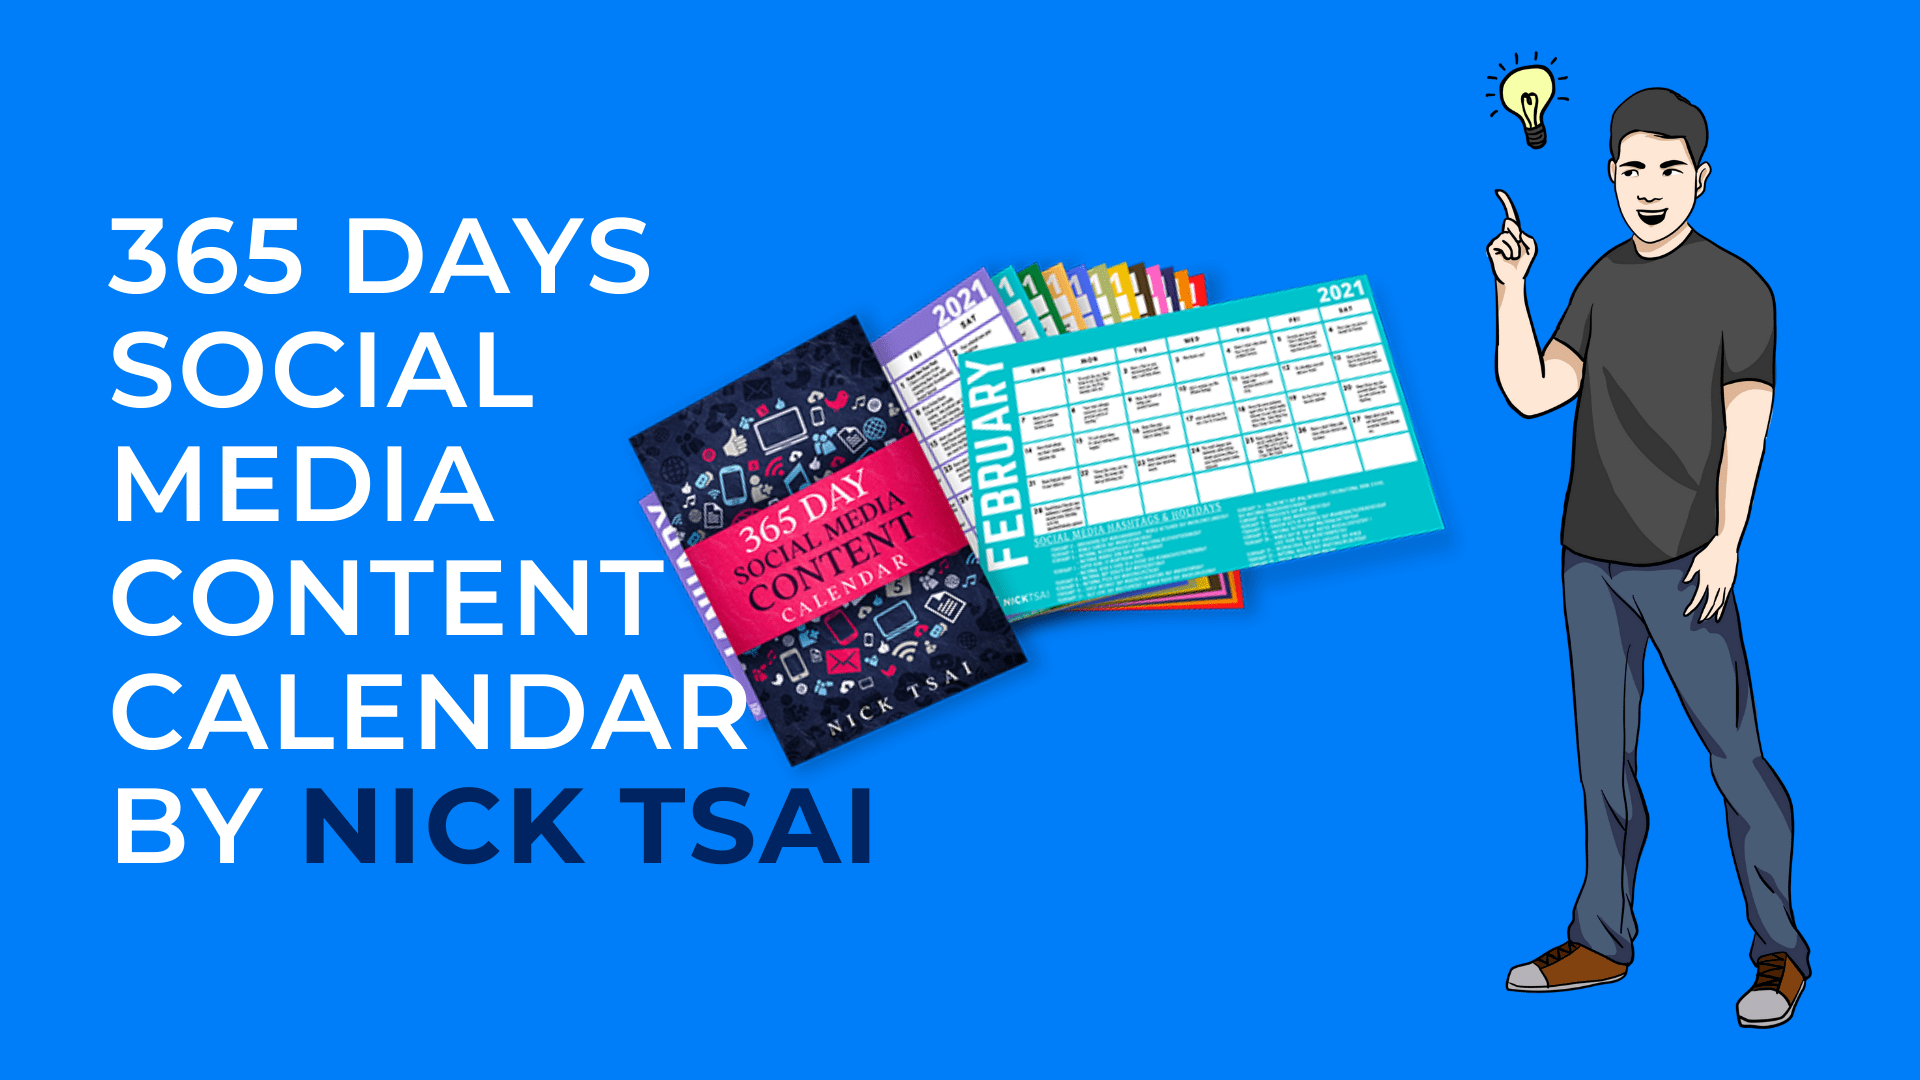 365 Days Social Media Content Calendar by NICK TSAI